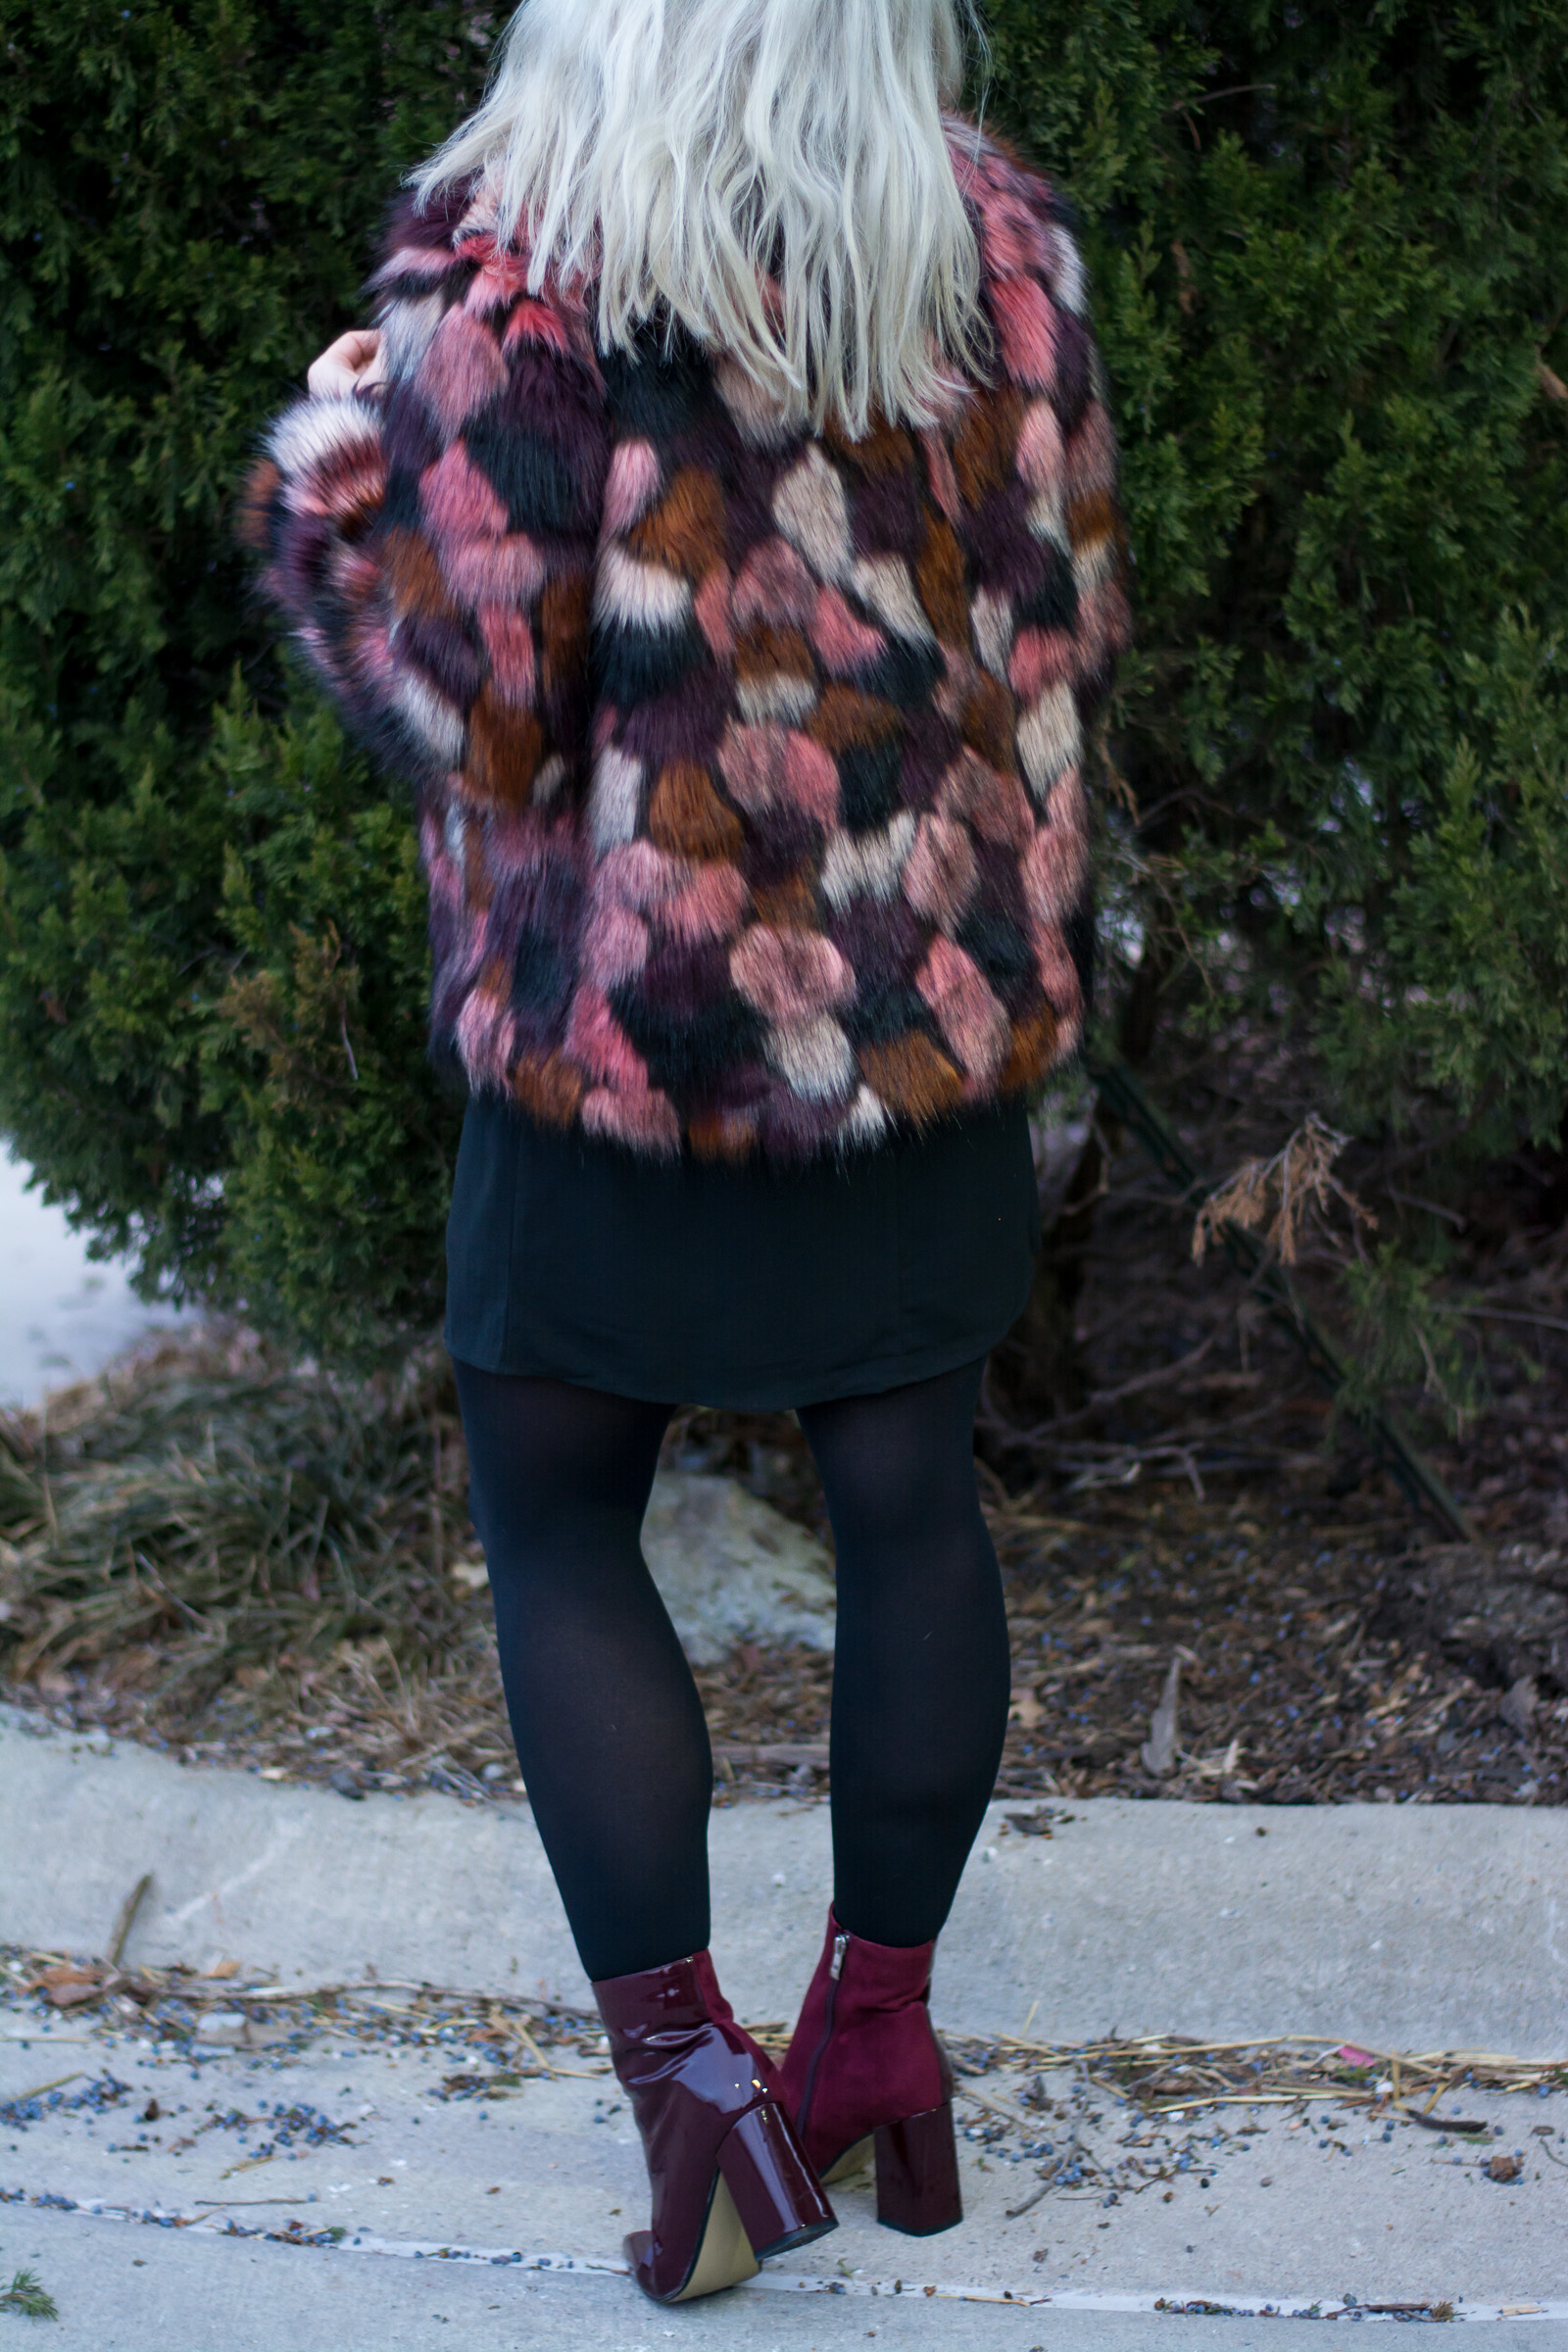 Dressing Up in Faux Fur for Valentine's Day. | Ashley from LSR